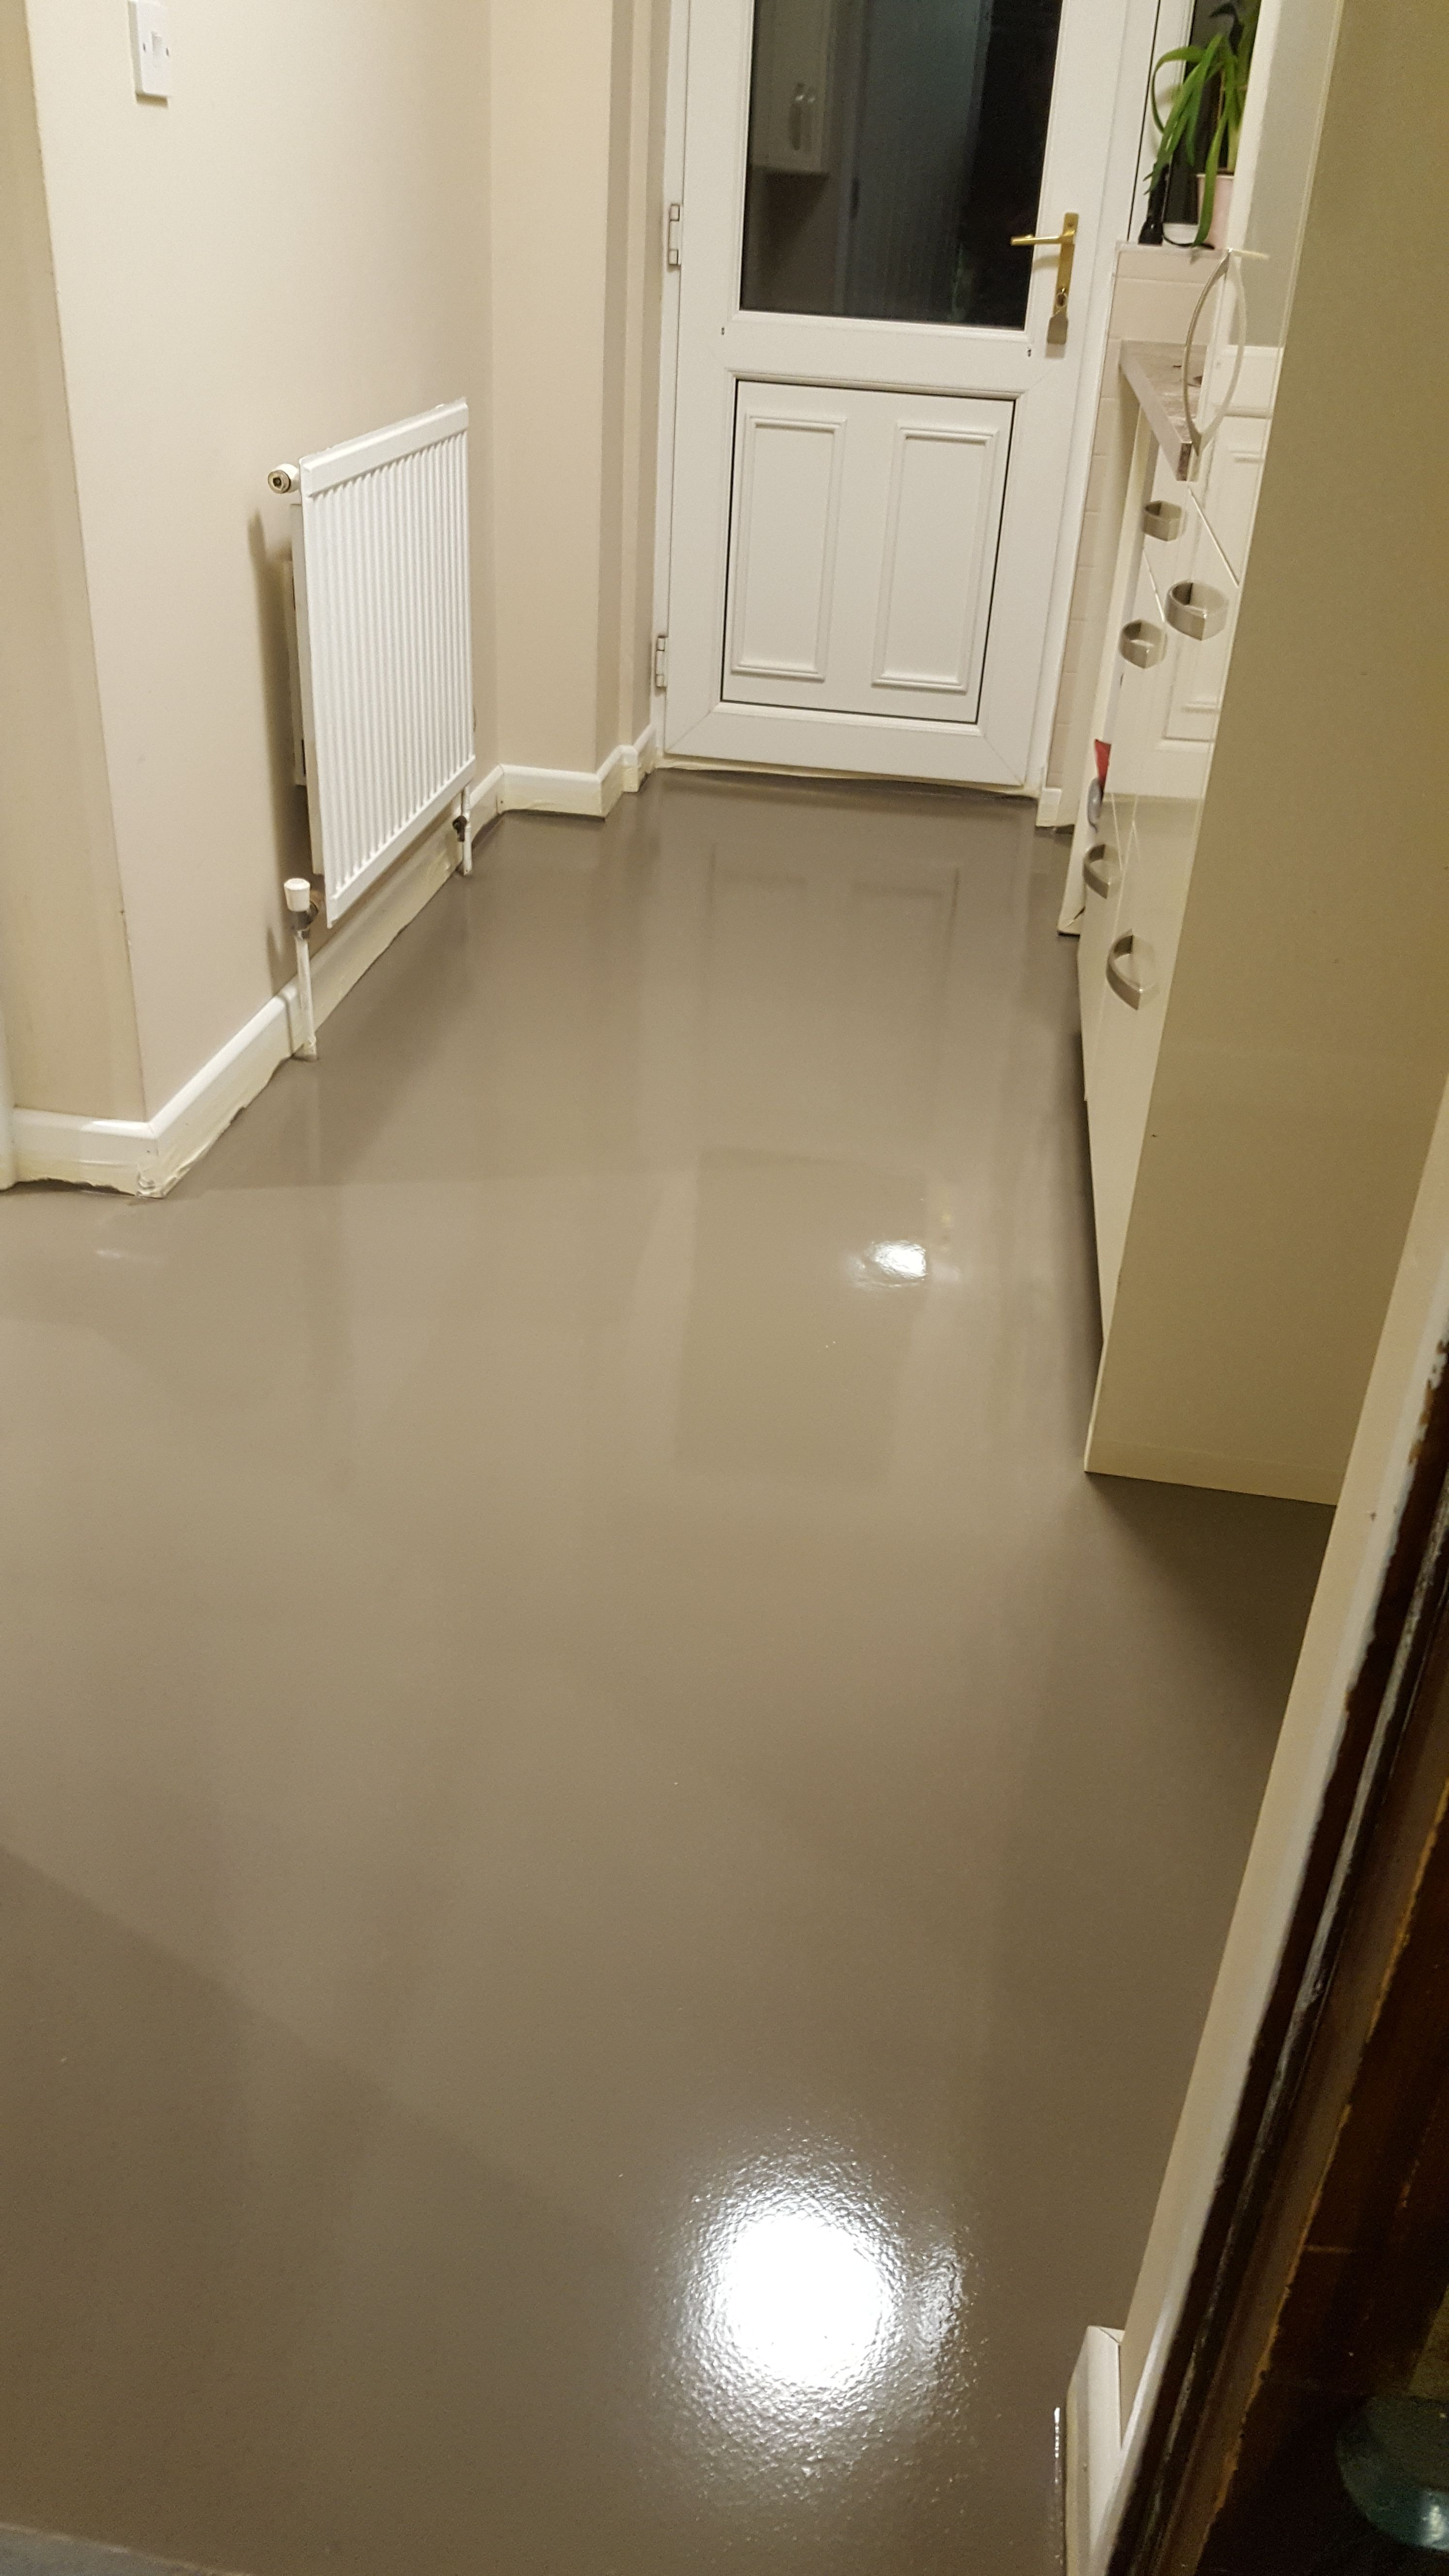 Screed Laid To 6mm Thickness Over 6mm Fg1 Rated Ply Boarding This